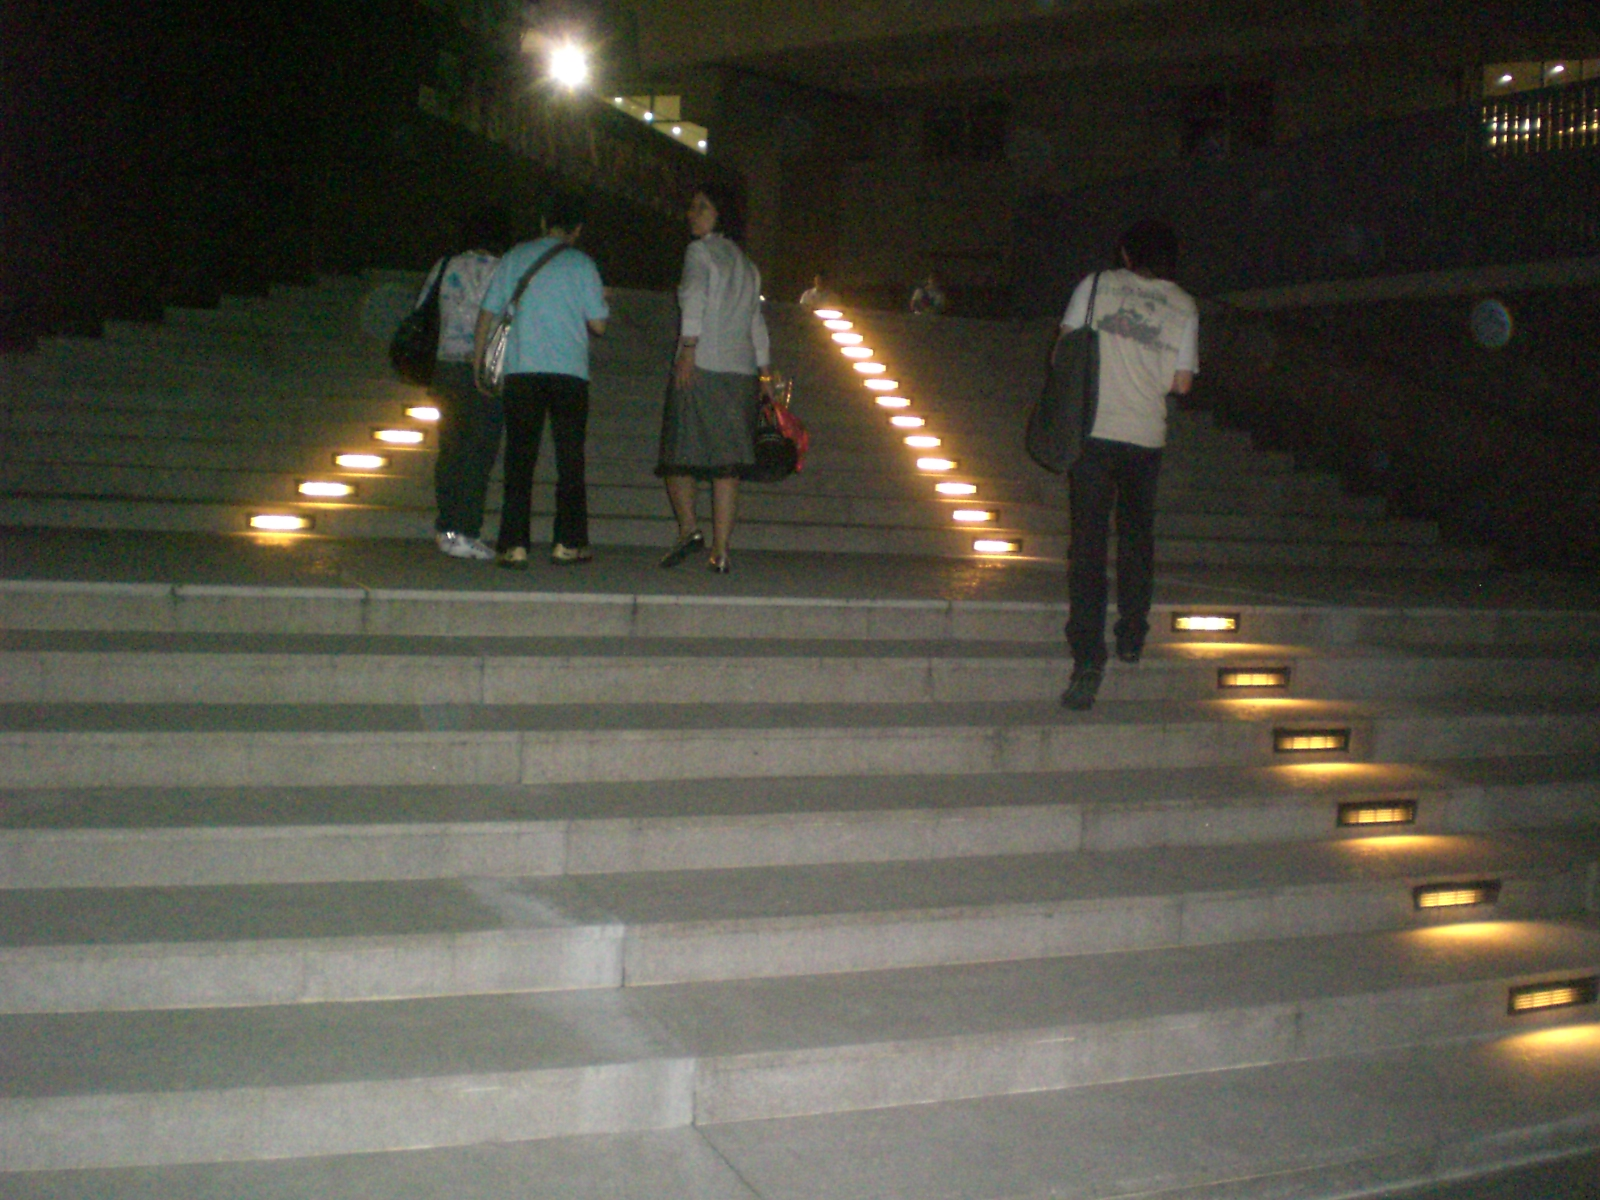 File:HK Chai Wan Youth Dev Centre Night Outdoor Stone Stairs ...